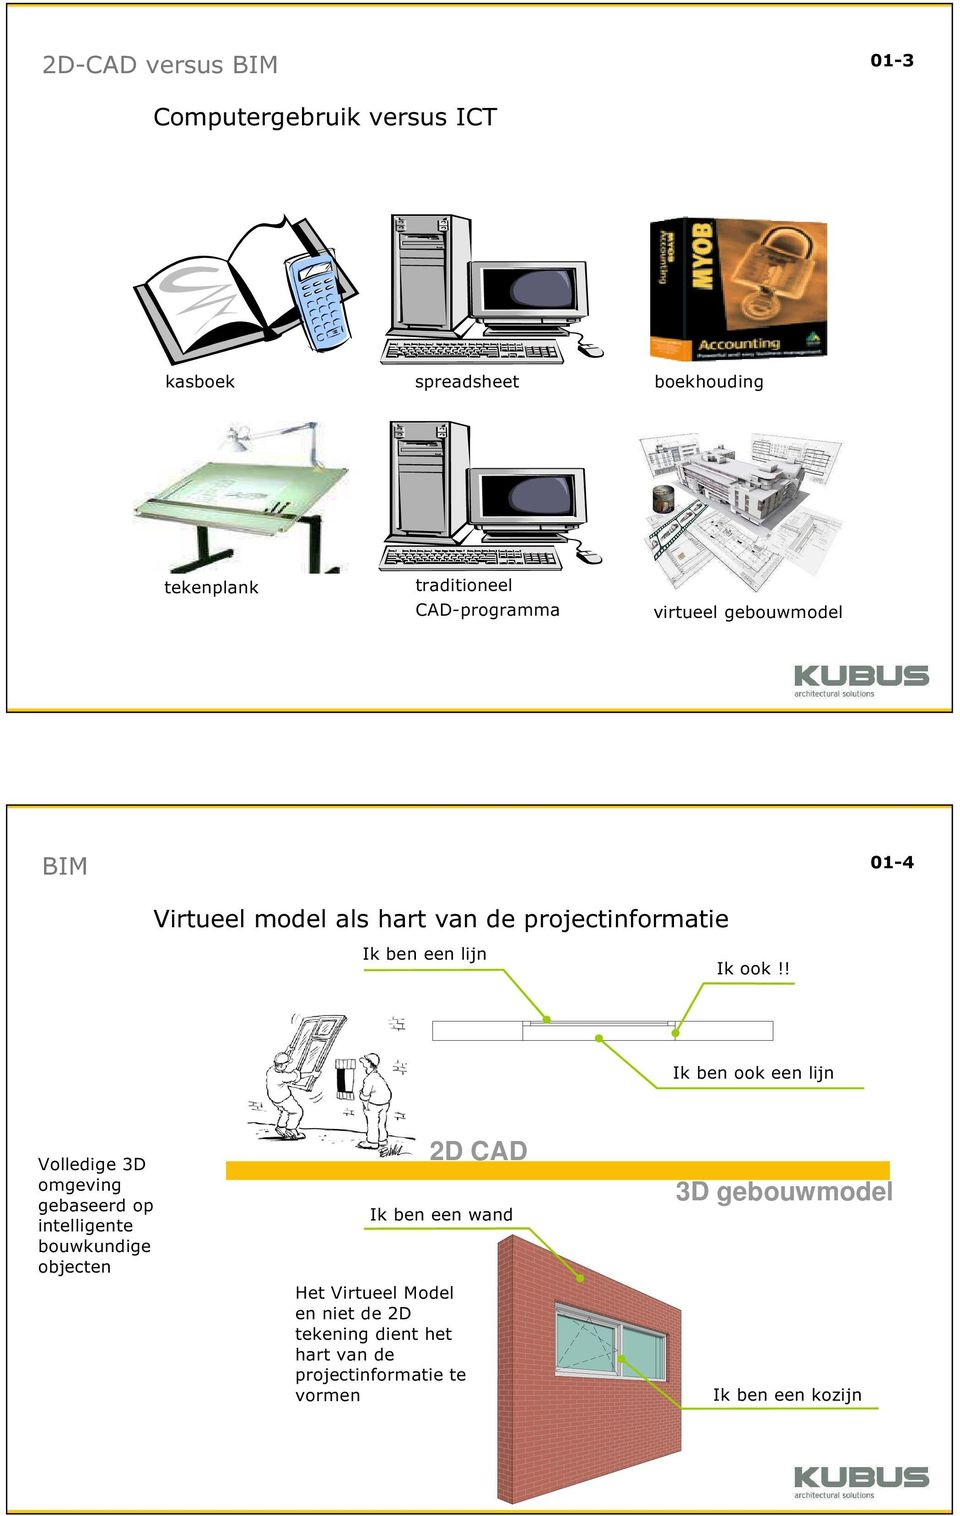 archicad cursus 01 wat is bim bim building information model virtueel gebouwmodel pdf. Black Bedroom Furniture Sets. Home Design Ideas